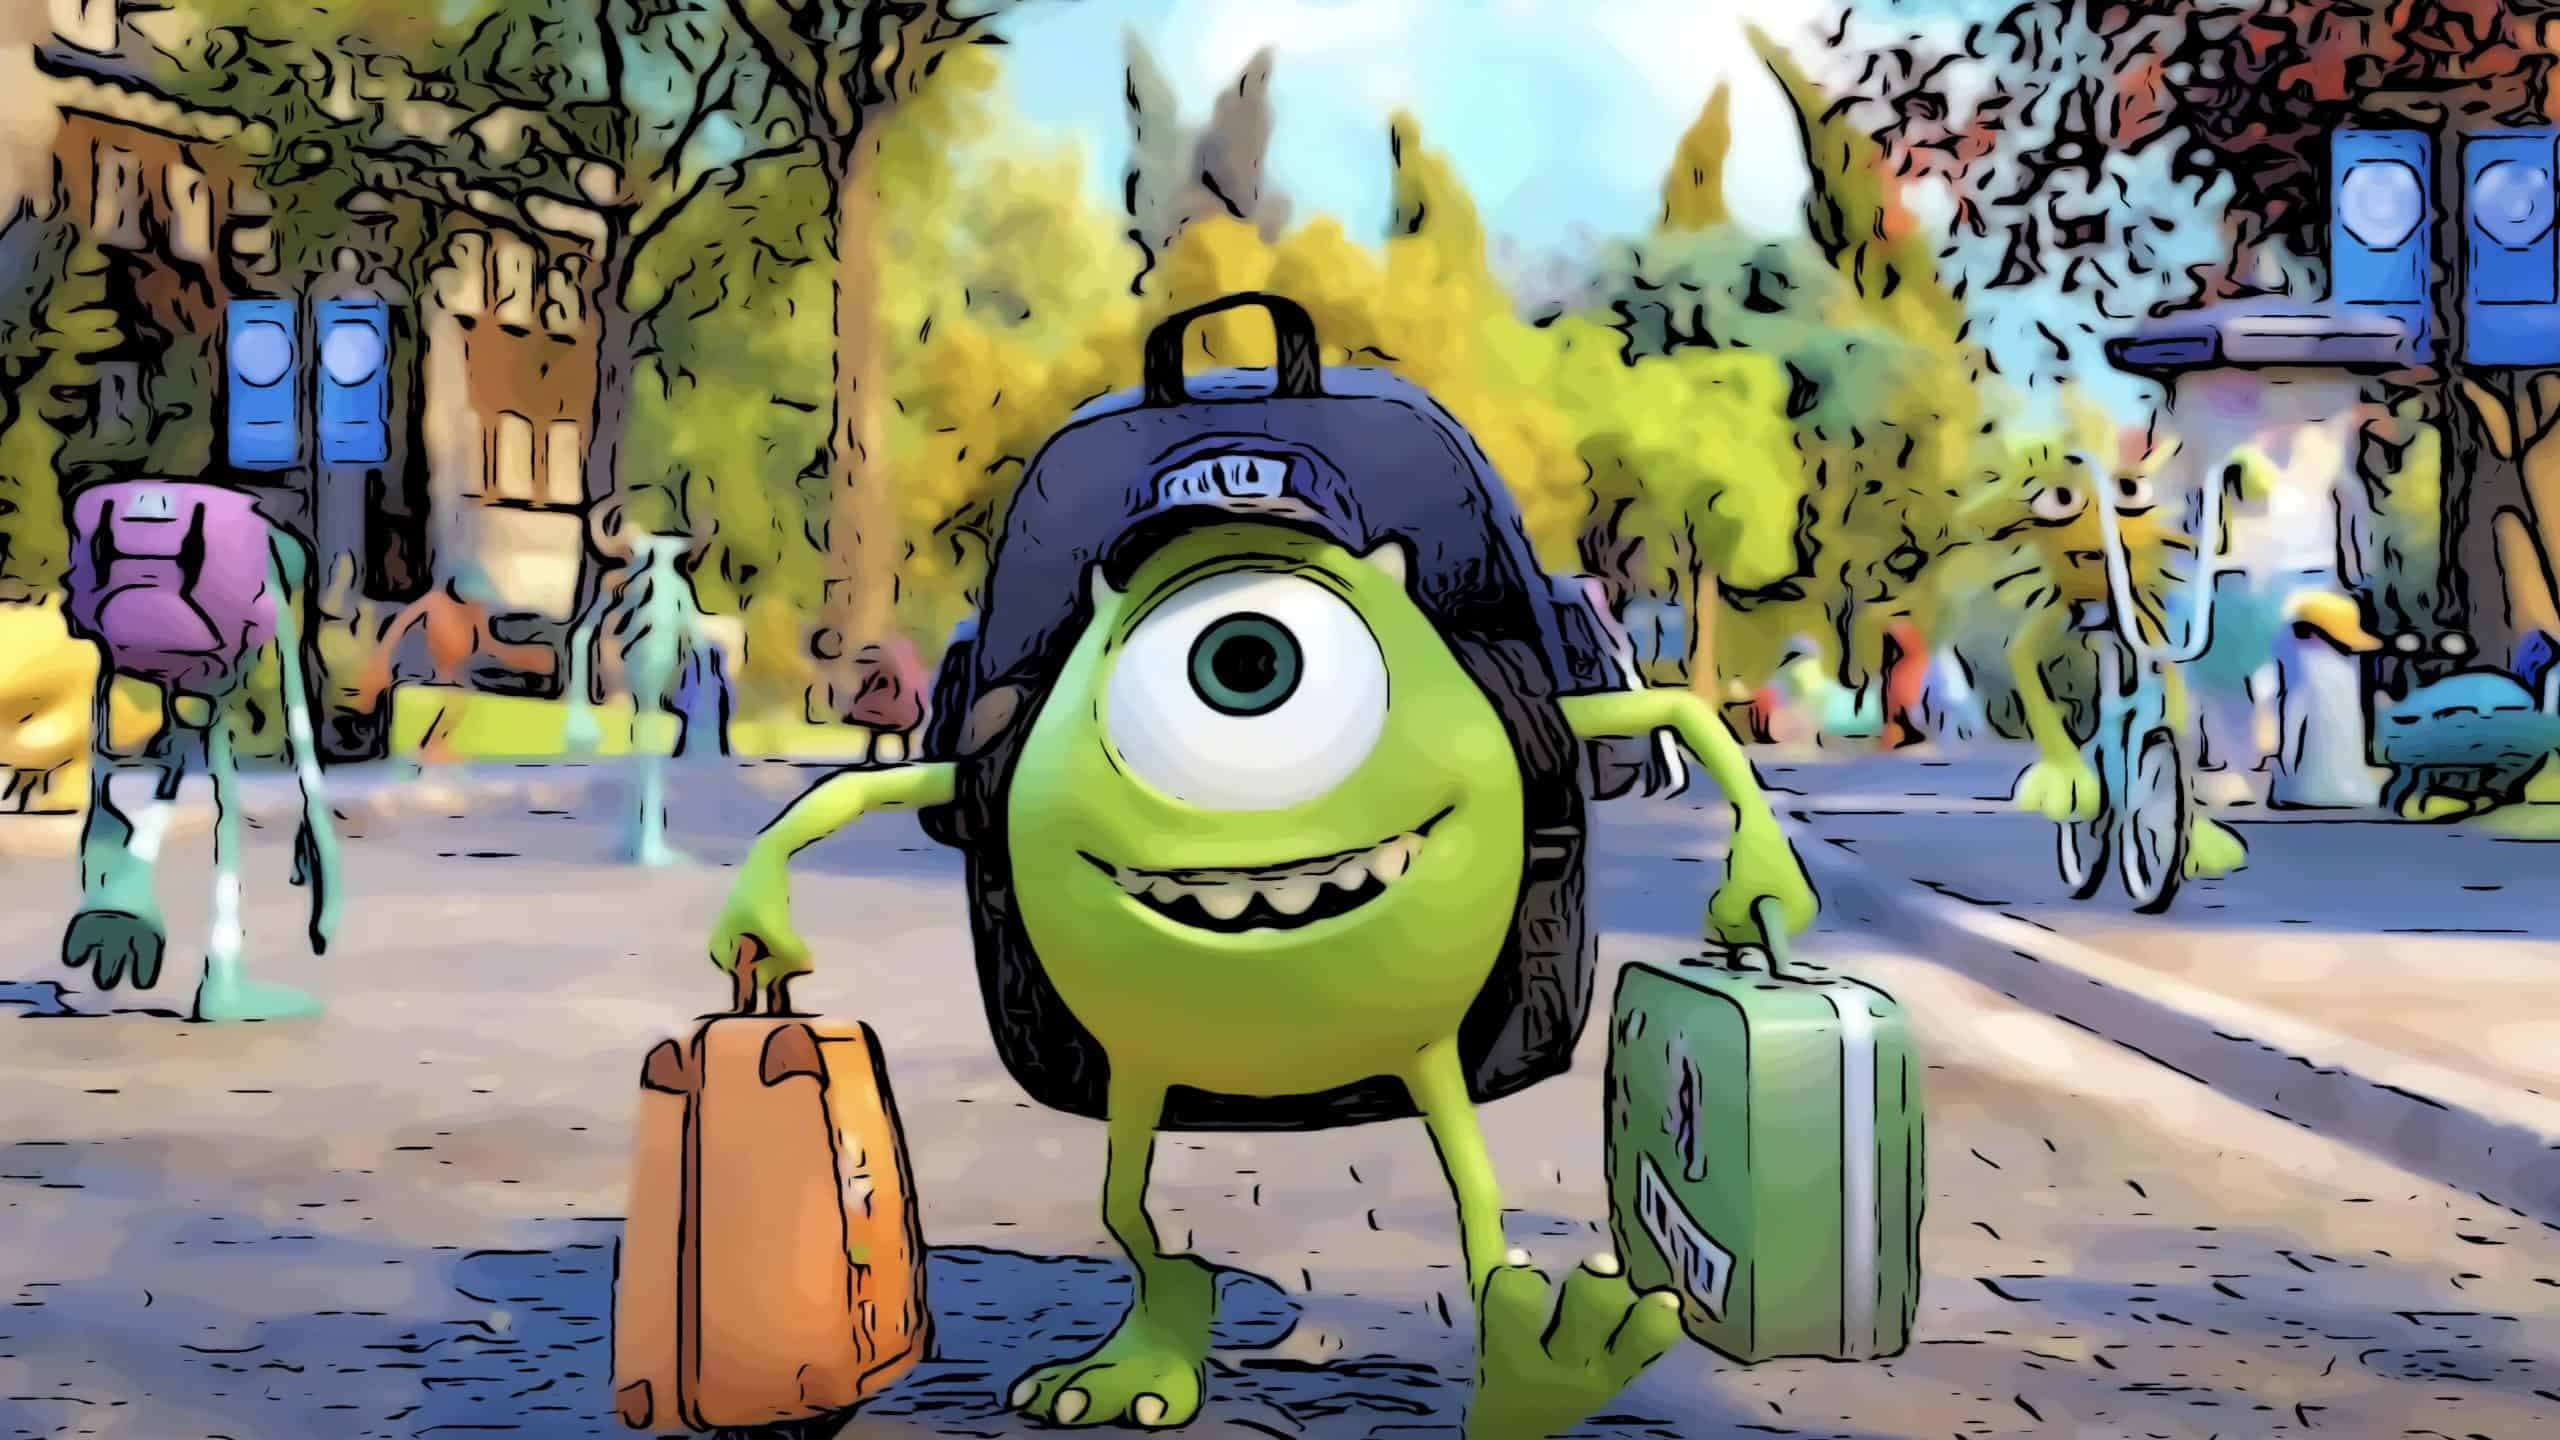 Scene from Monsters University for movies like Onward post.